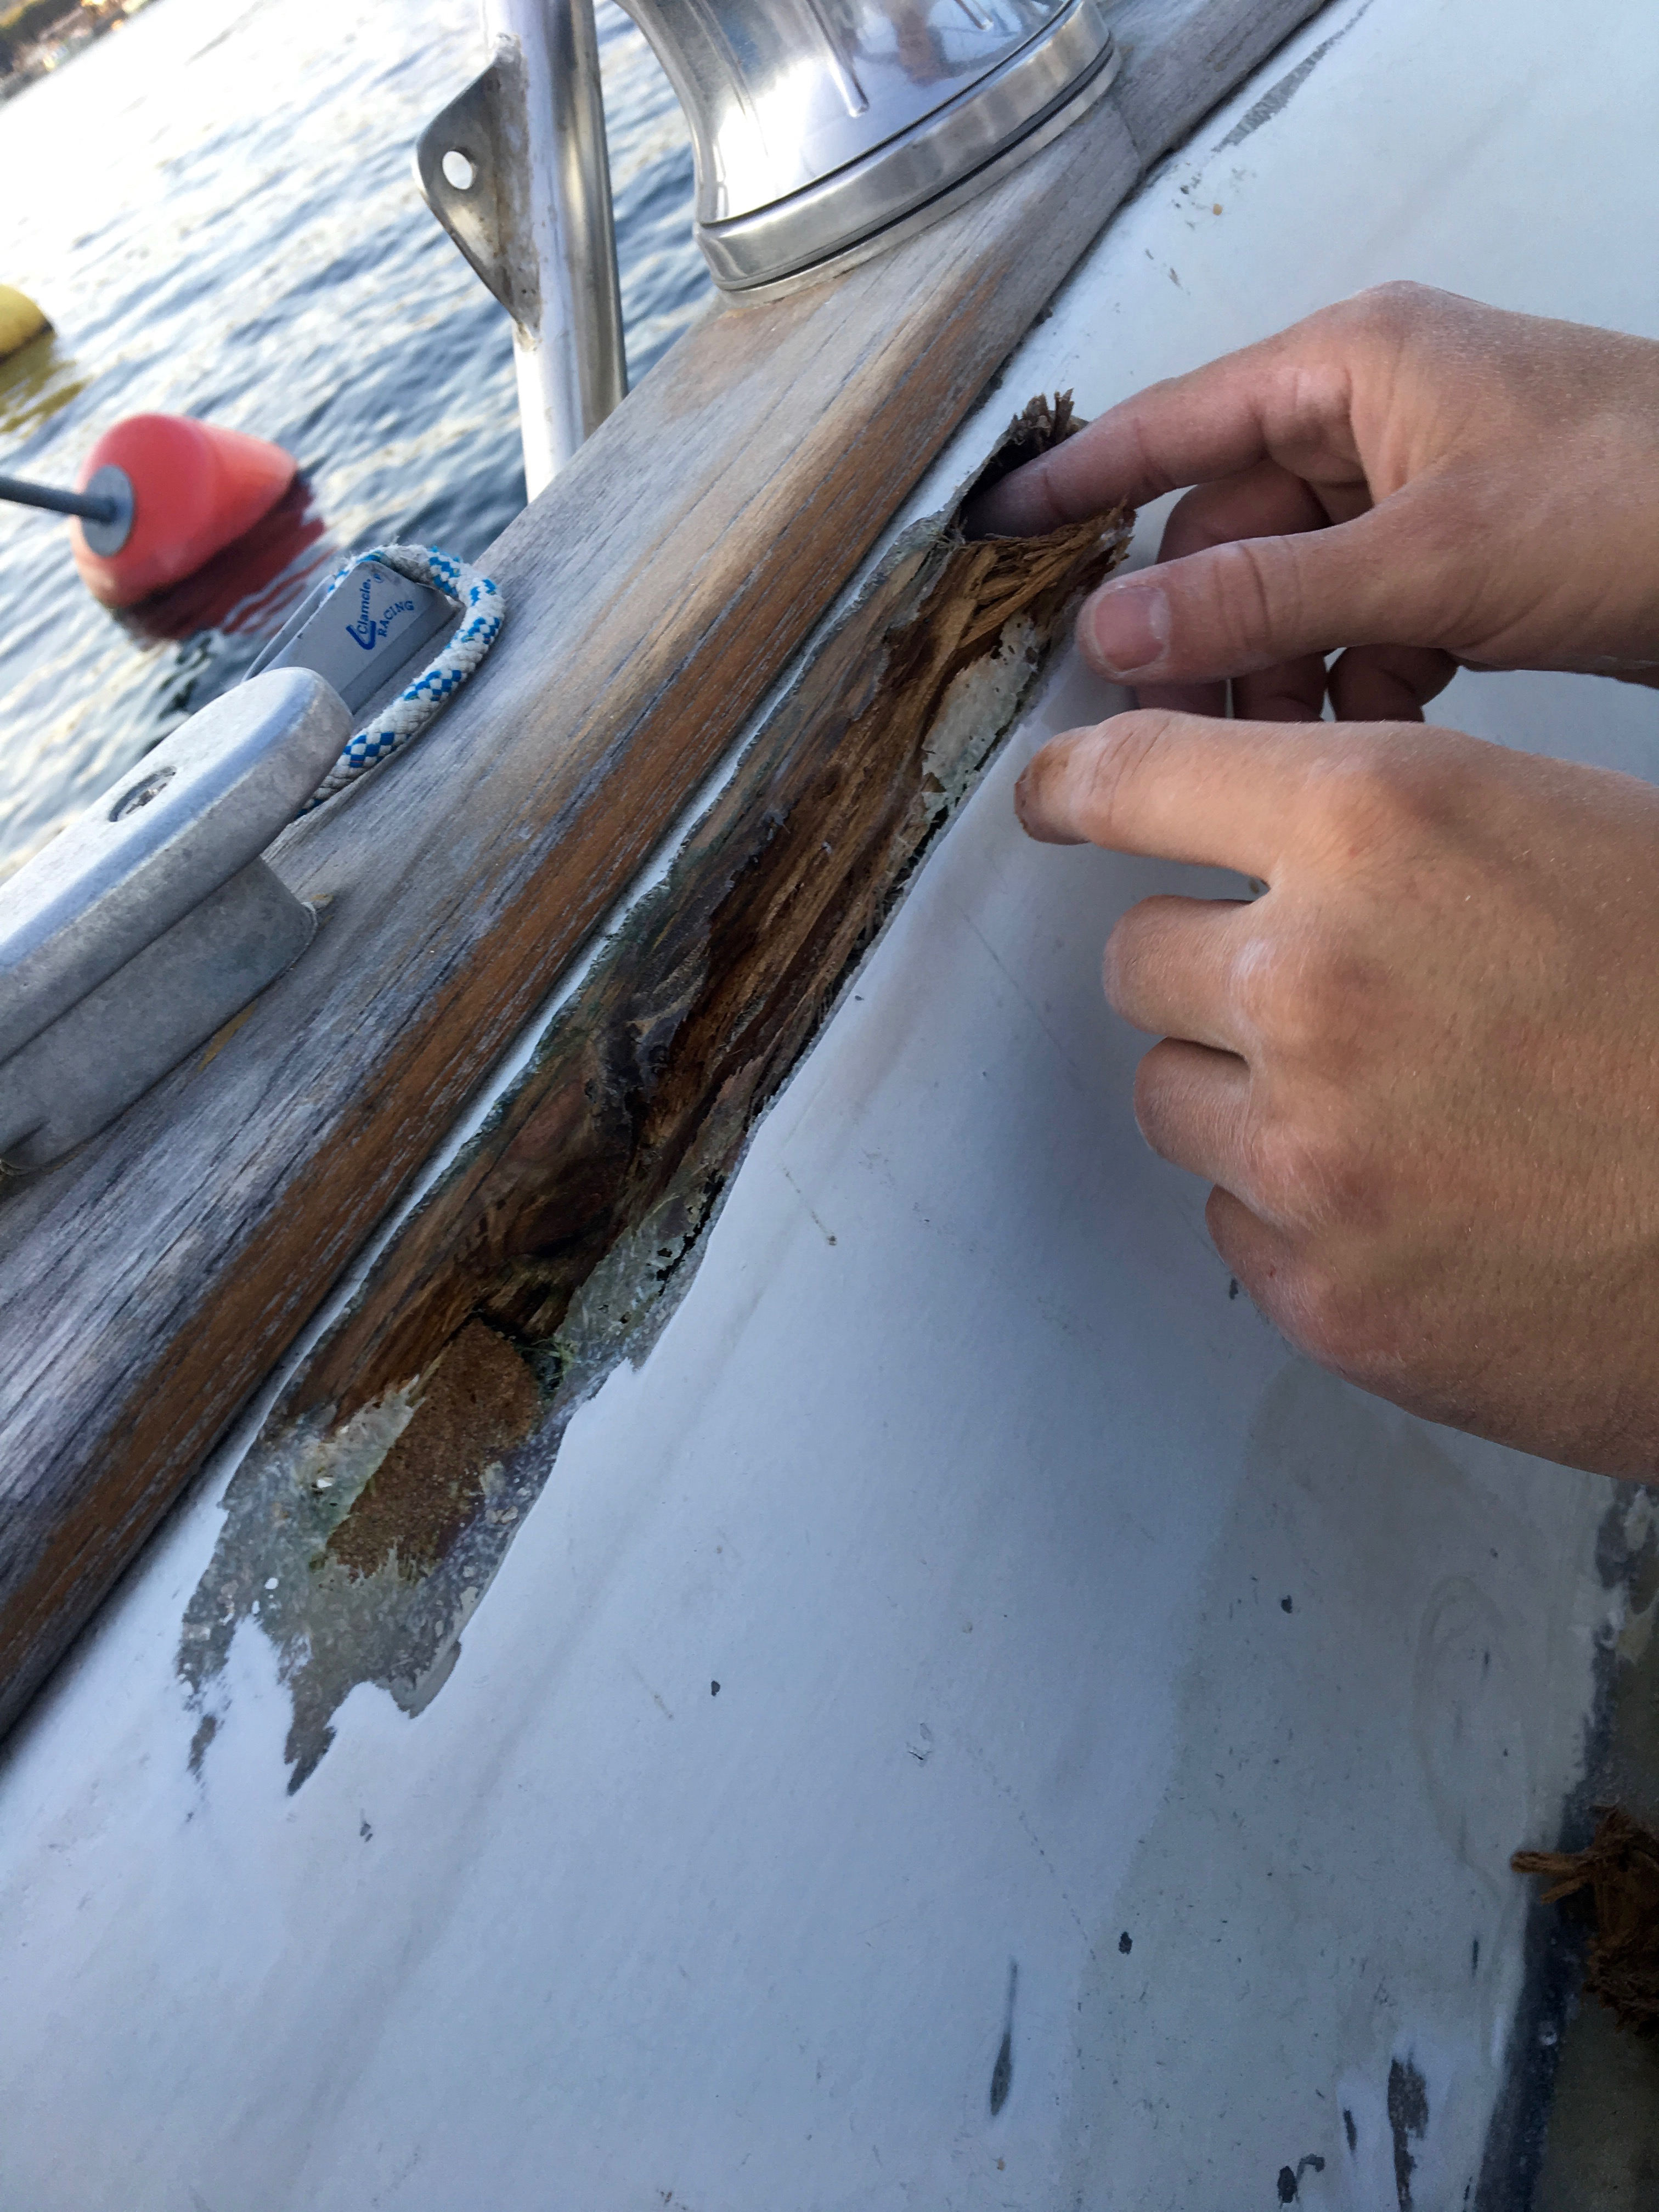 plastic crack with wet and rotten wood inside